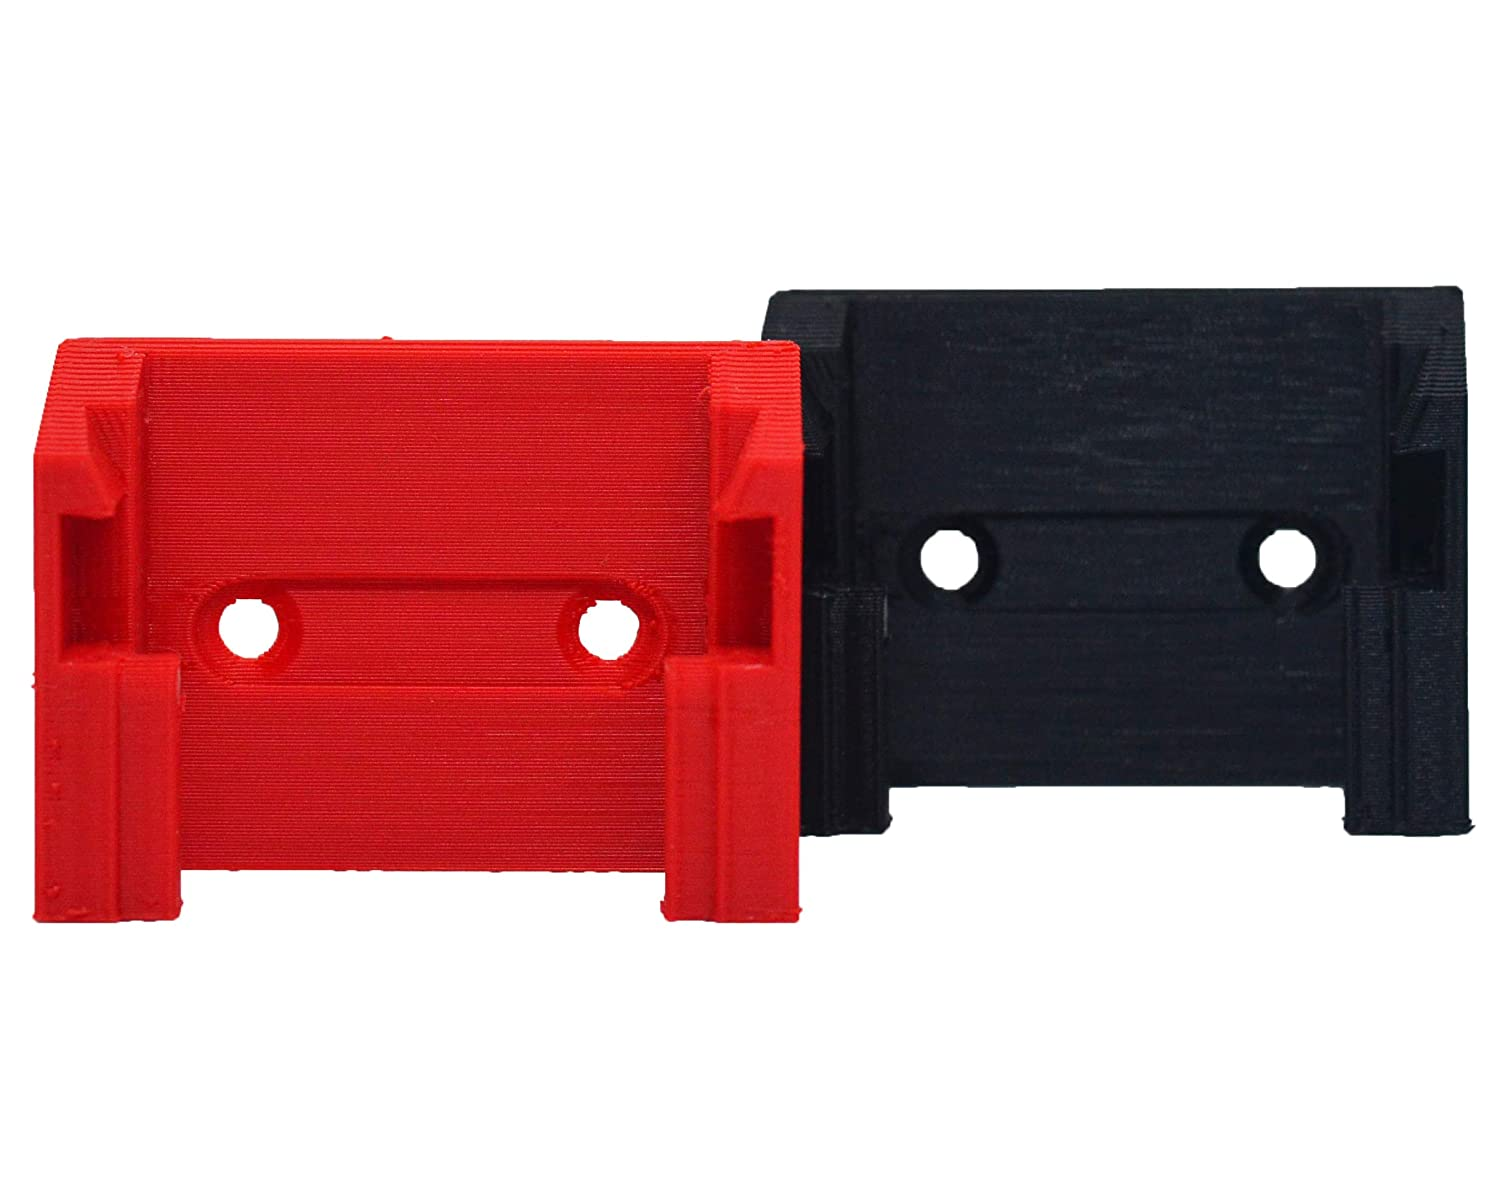 Screw or Ziptie Compatible Battery Holder Milwaukee M18 Slim Wall Mount 4-Pack Red